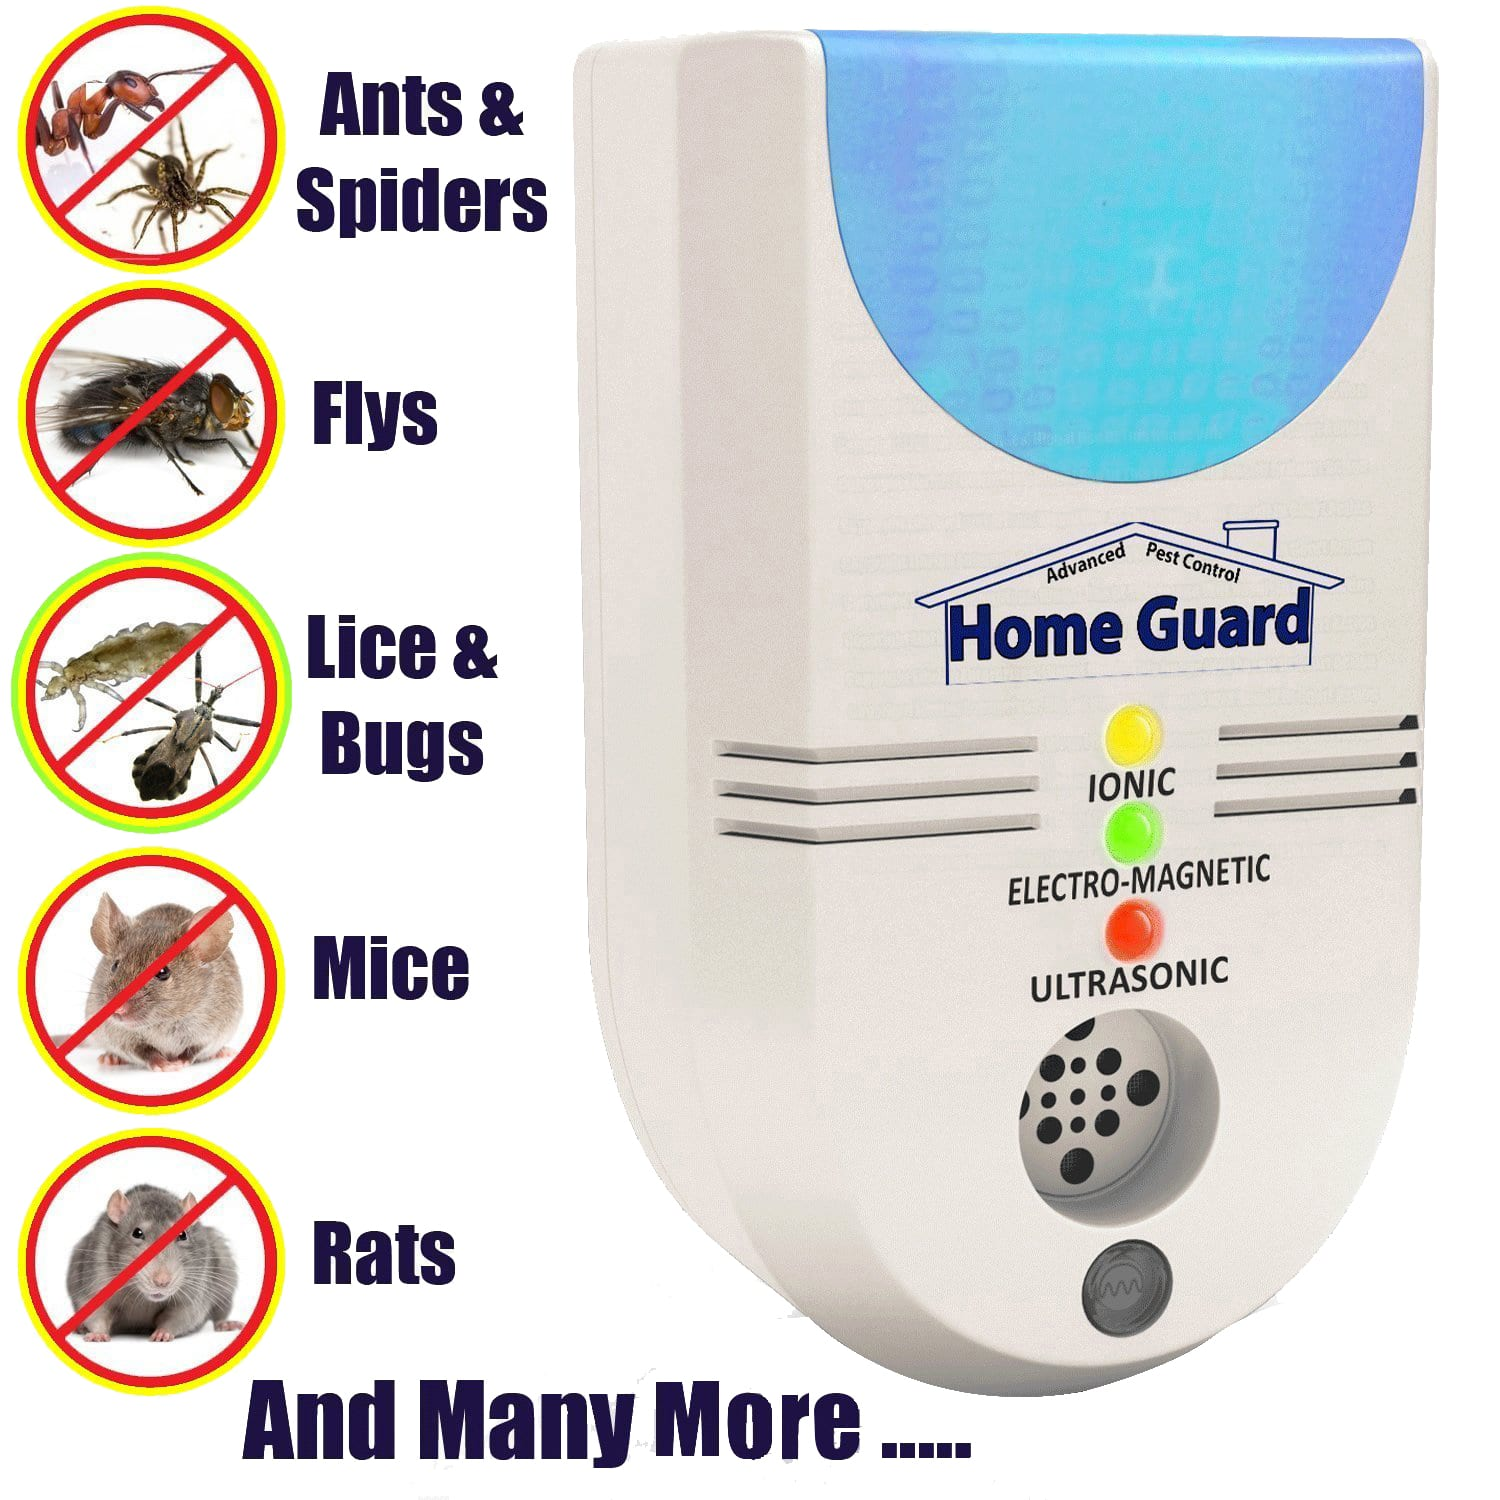 home guard plug in ultrasonic pest repeller for ants, spiders, flys, lice, mice, rats, mosquito